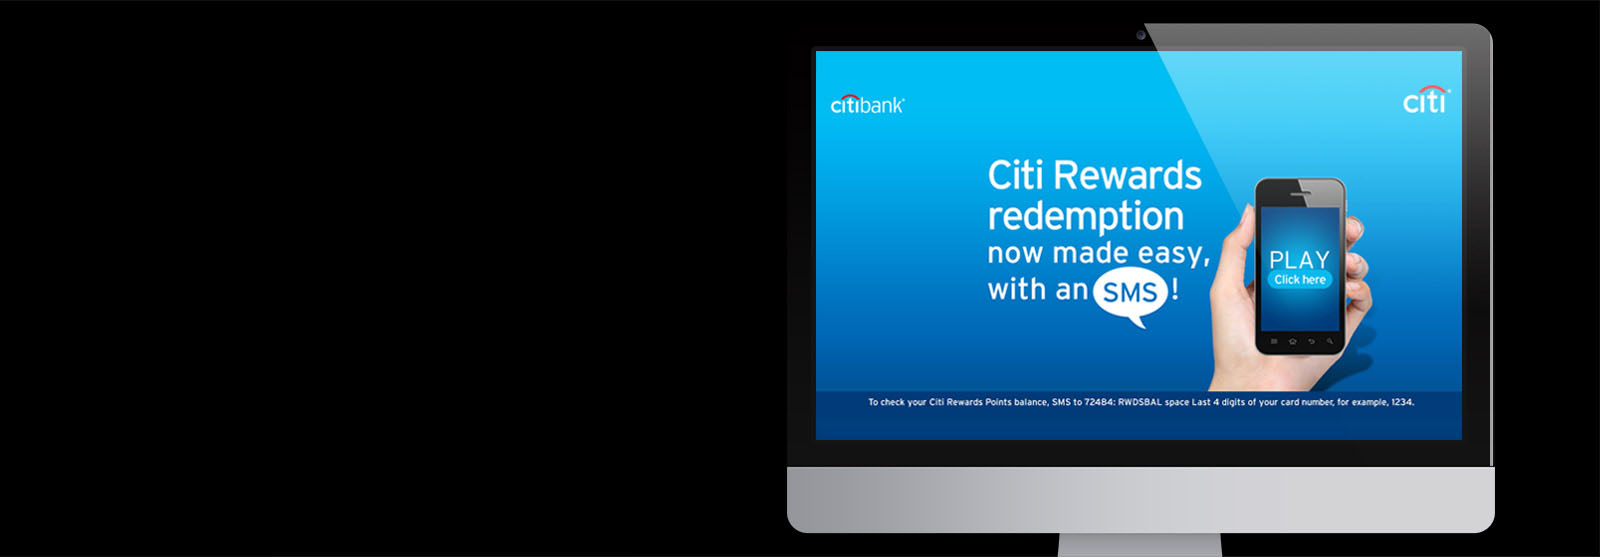 Citibank Citi Rewards Card Video